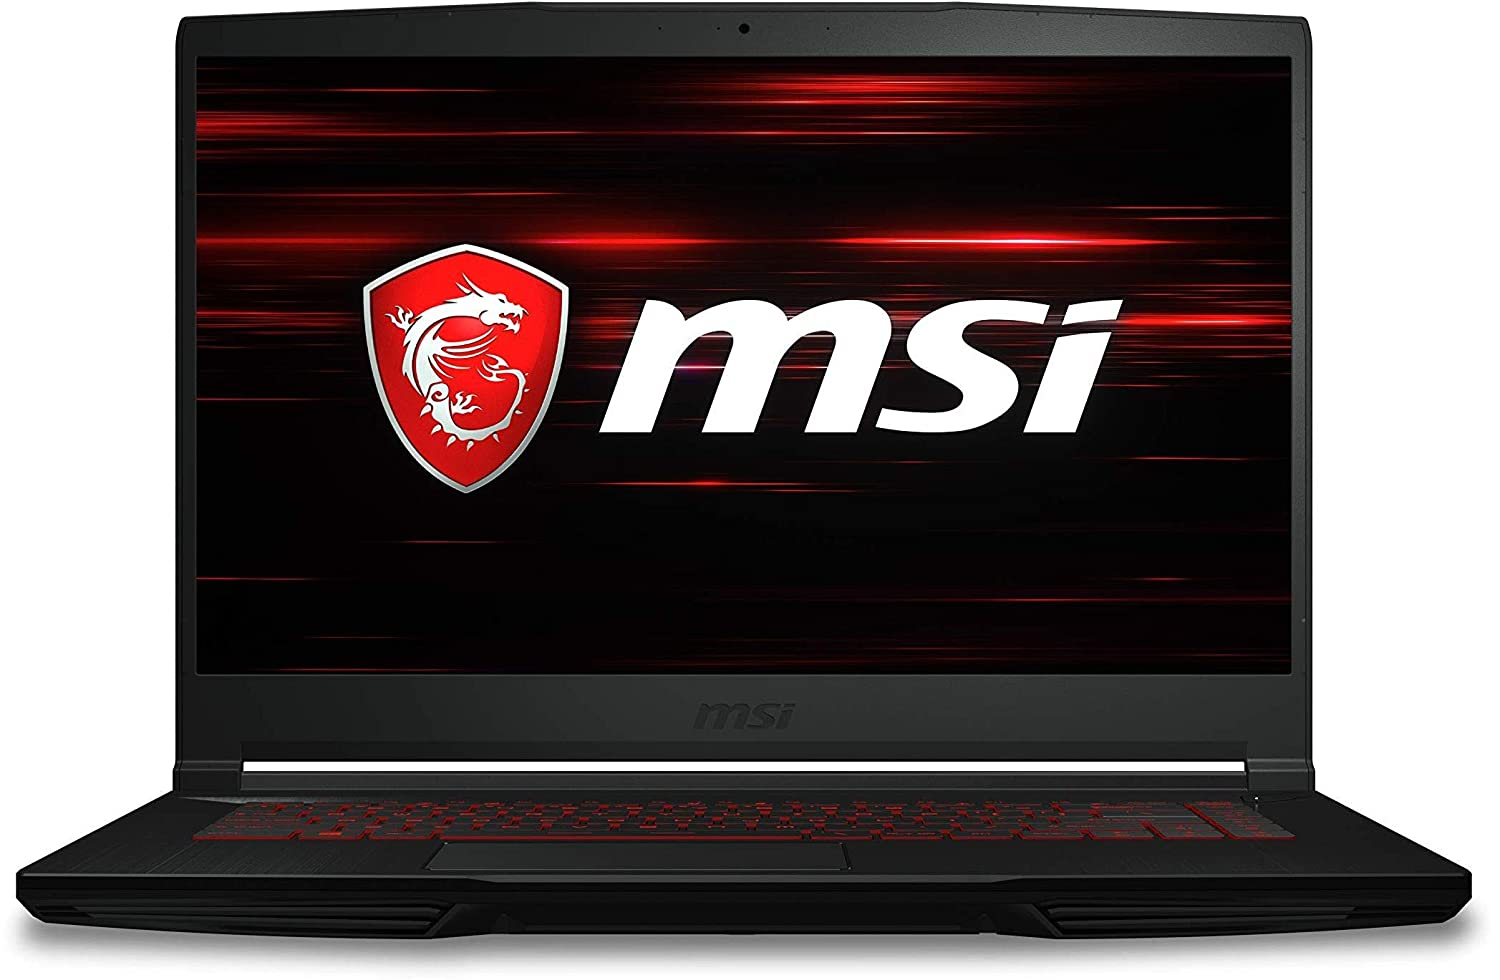 MSI GF63 Intel Core i5 8th Gen 15.6-inch Gaming Laptop With The Best Performance, gaming laptop, best performance gaming laptop, laptop with the best specifications